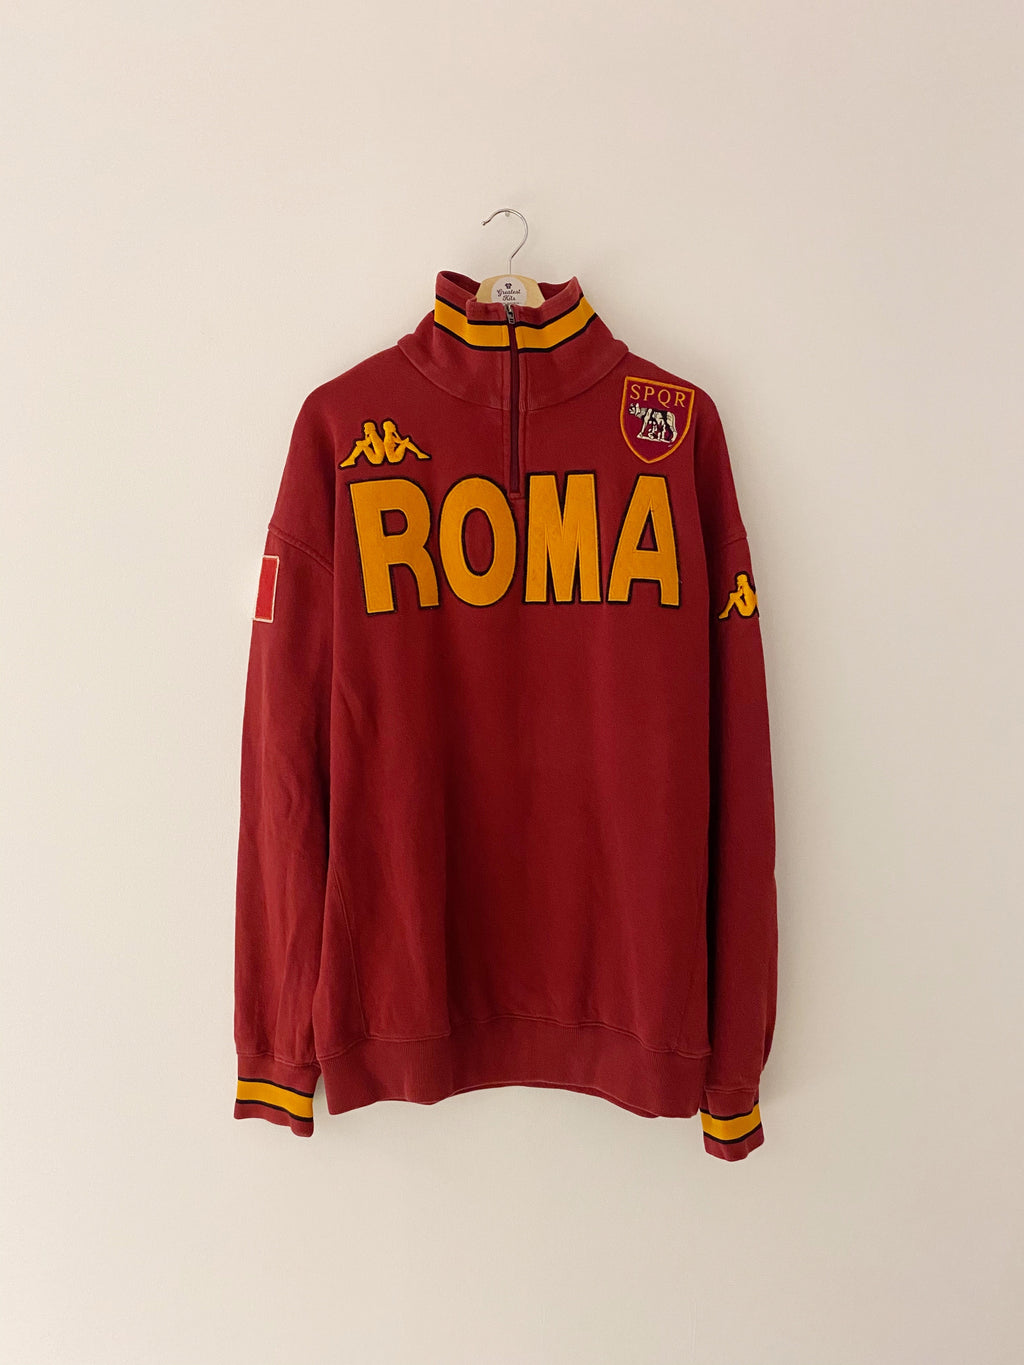 2008/09 Roma Training Jacket (3XL) 8/10